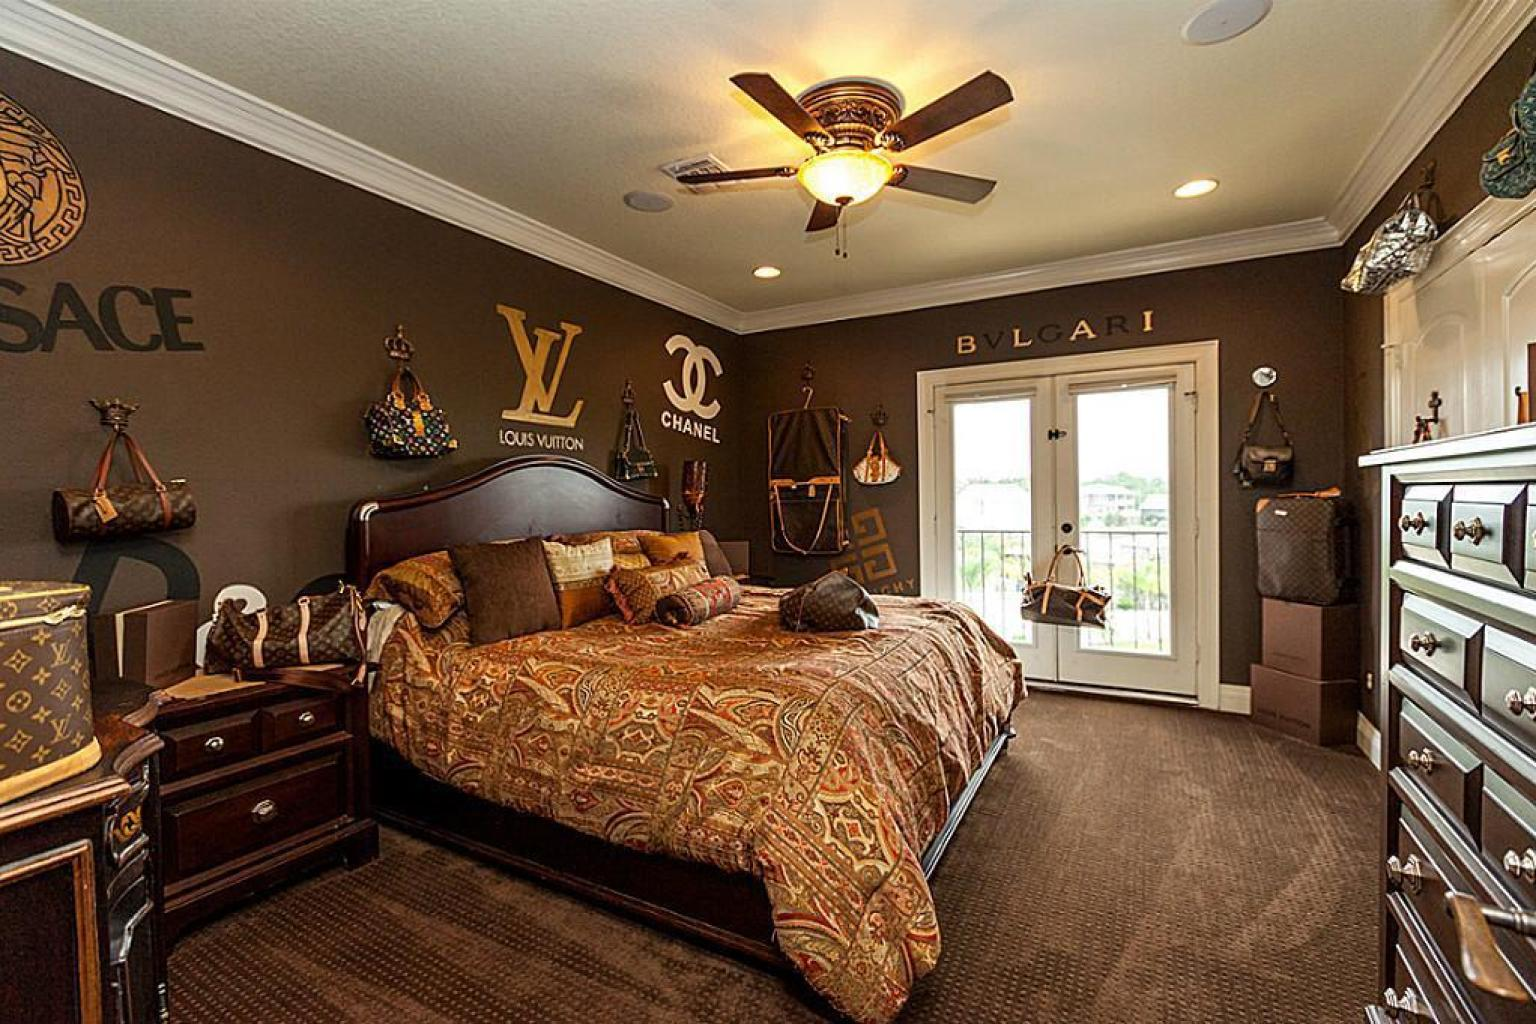 Best Louis Vuitton Bedroom In Texas Home For Sale Takes Fashion This Month